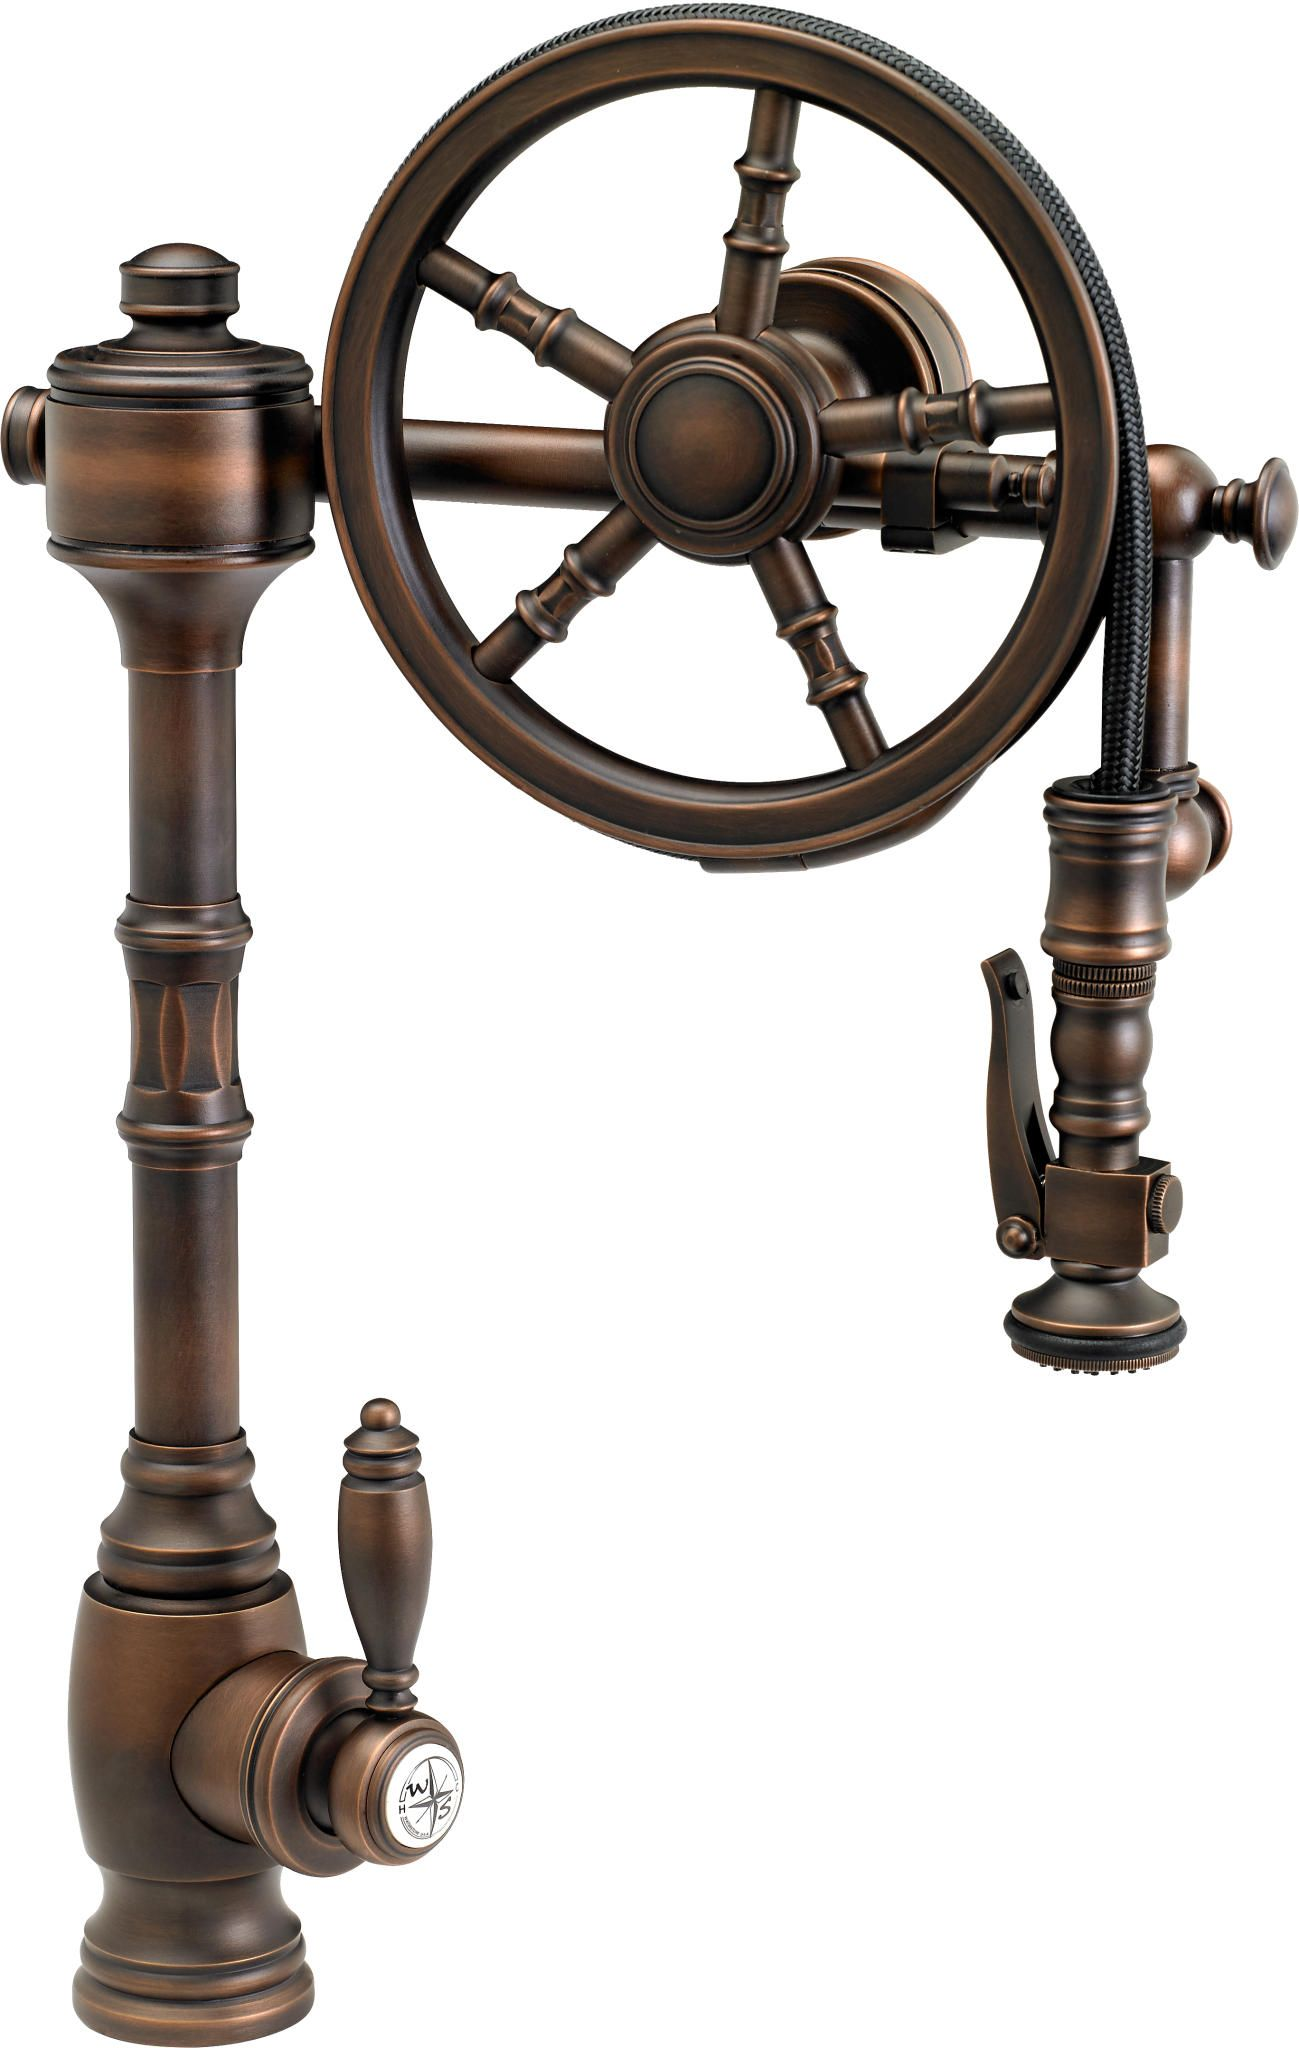 industrial faucet kitchen handles and knobs past future meet in steampunk decor